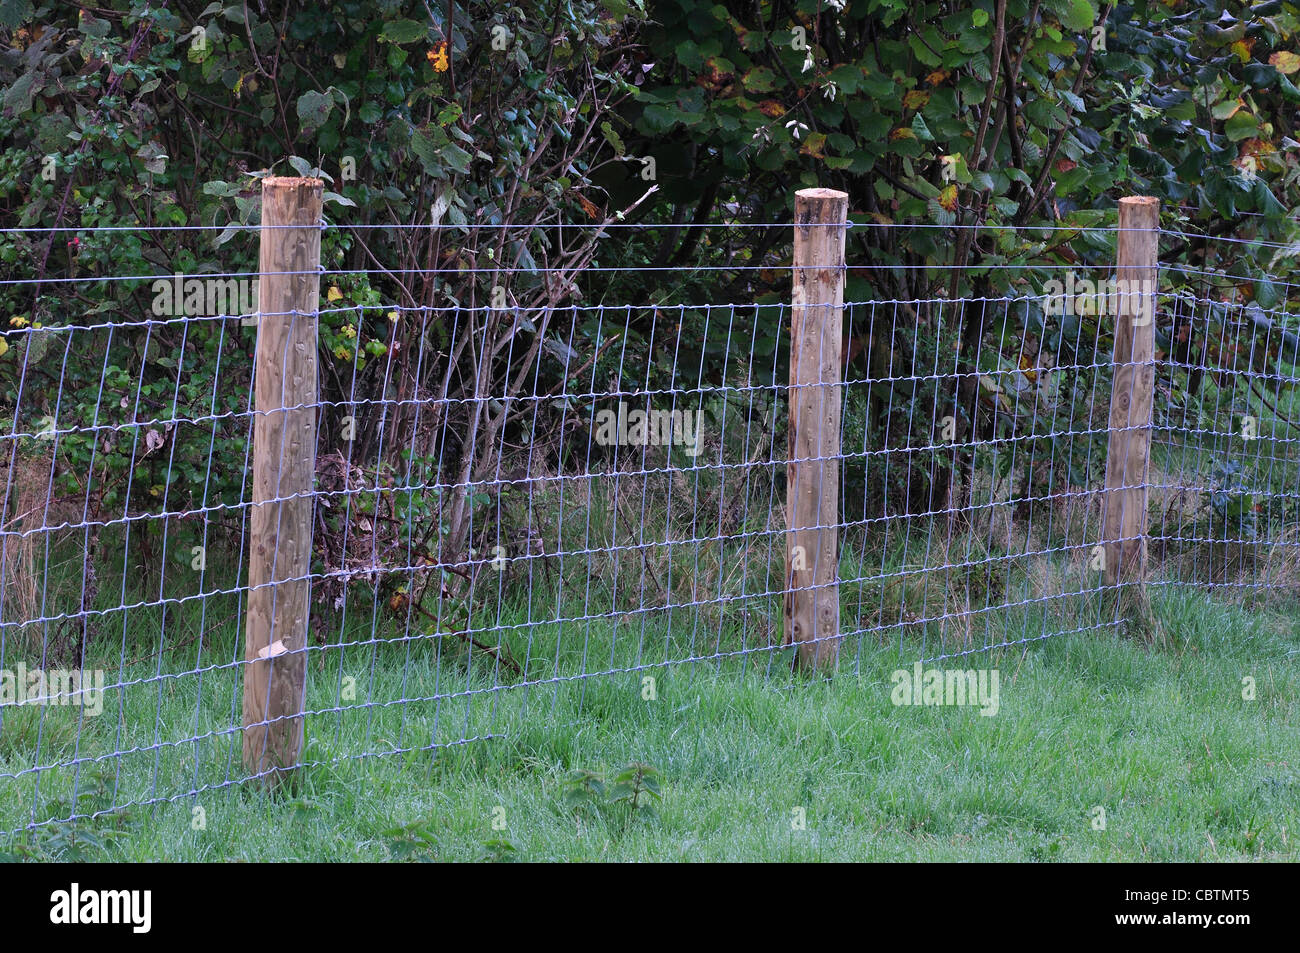 A wire sheep fence UK Stock Photo: 41725157 - Alamy